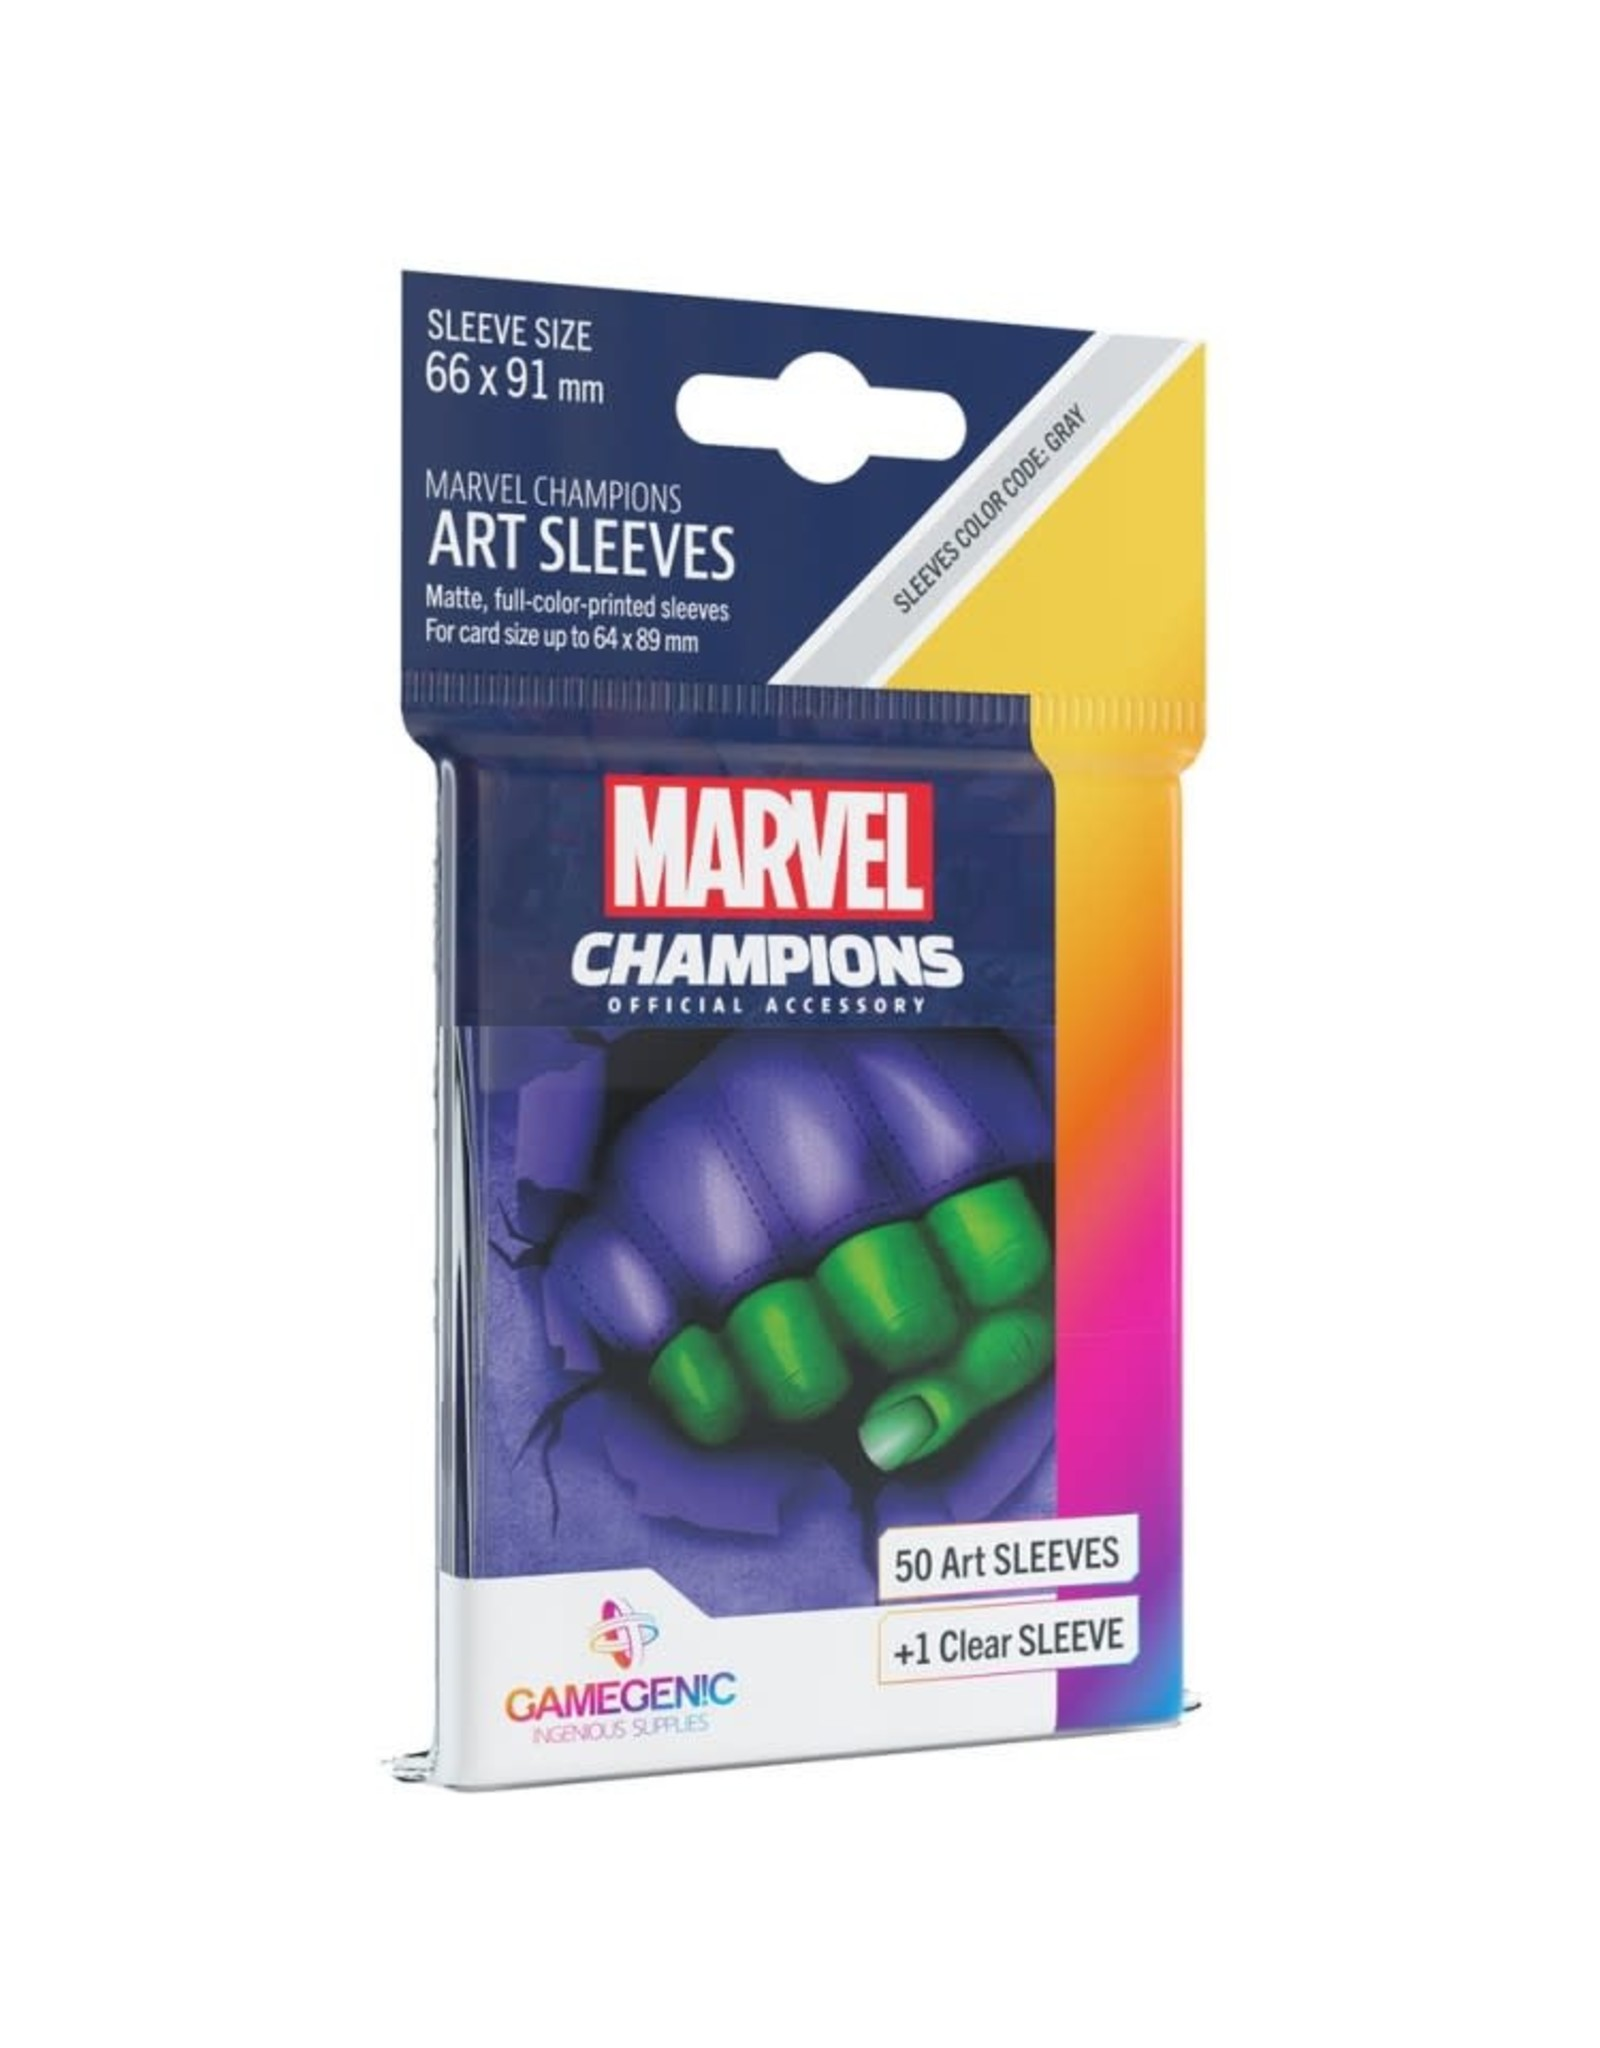 GameGenic Marvel Champions LCG: She-Hulk Sleeves